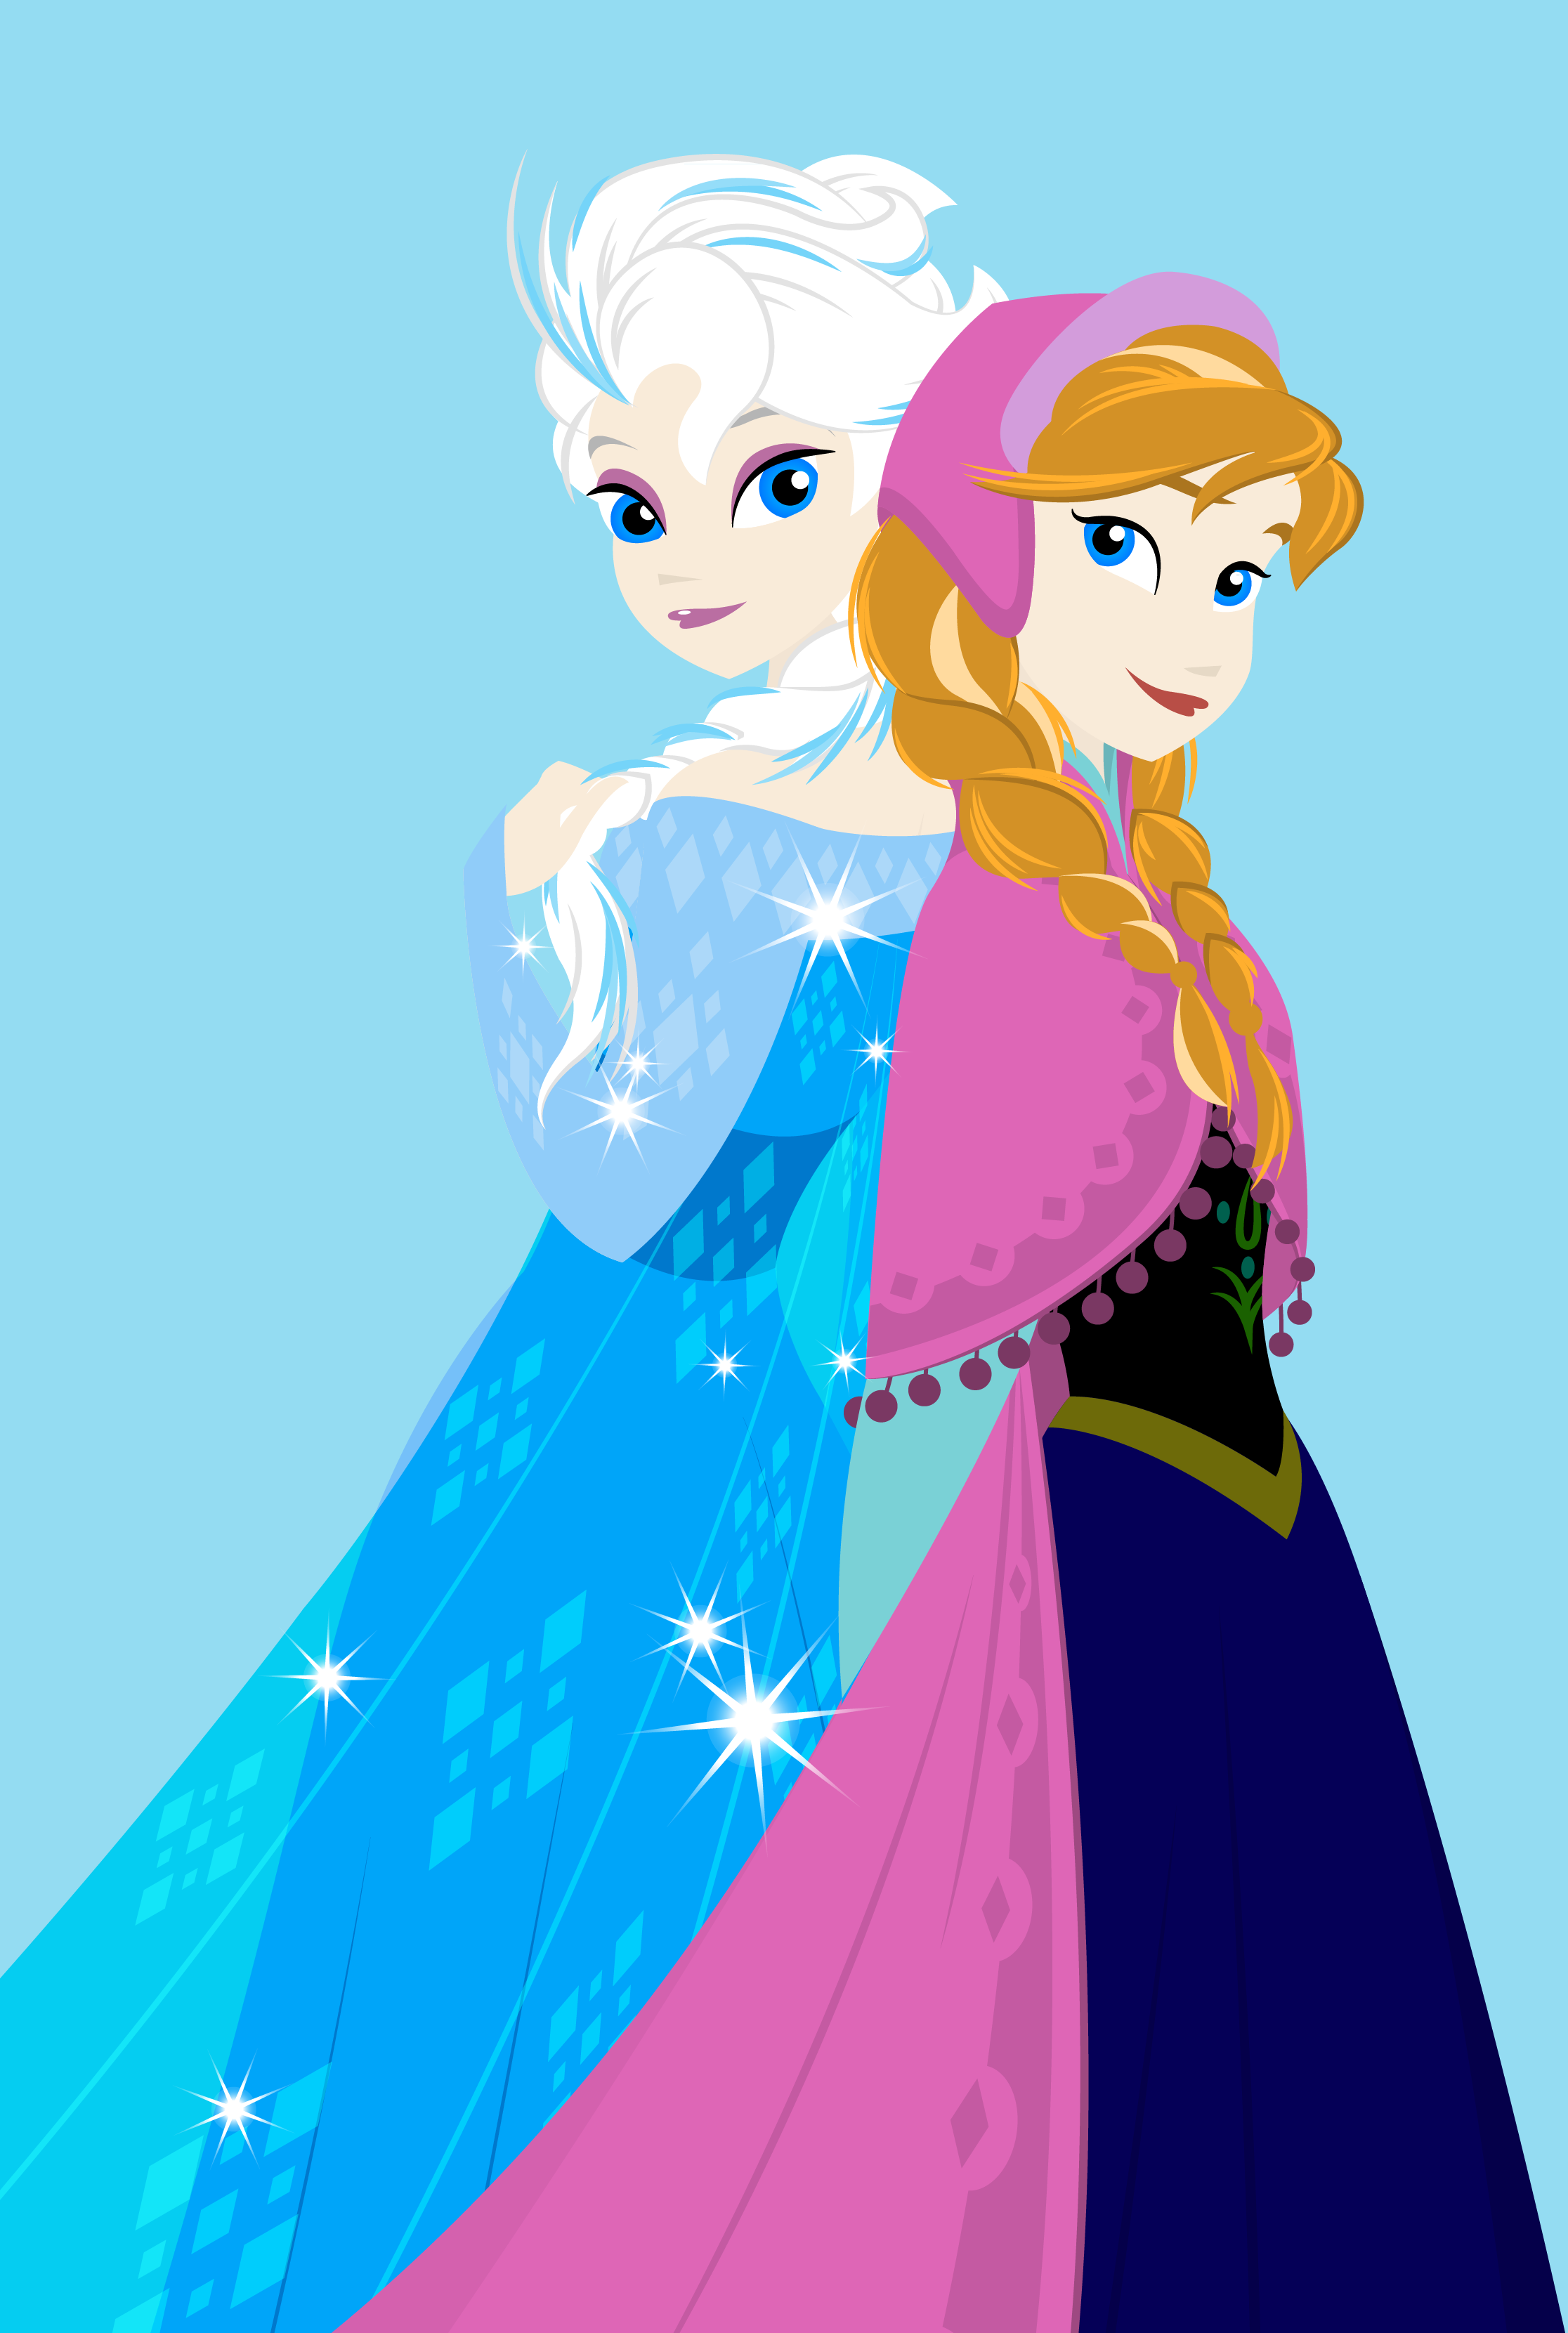 Di disney frozen wall murals - Here S Another Drawing For Disney S Frozen Princess Anna And Elsa The Snow Queen Side By Side Elsa And Anna First Drawing